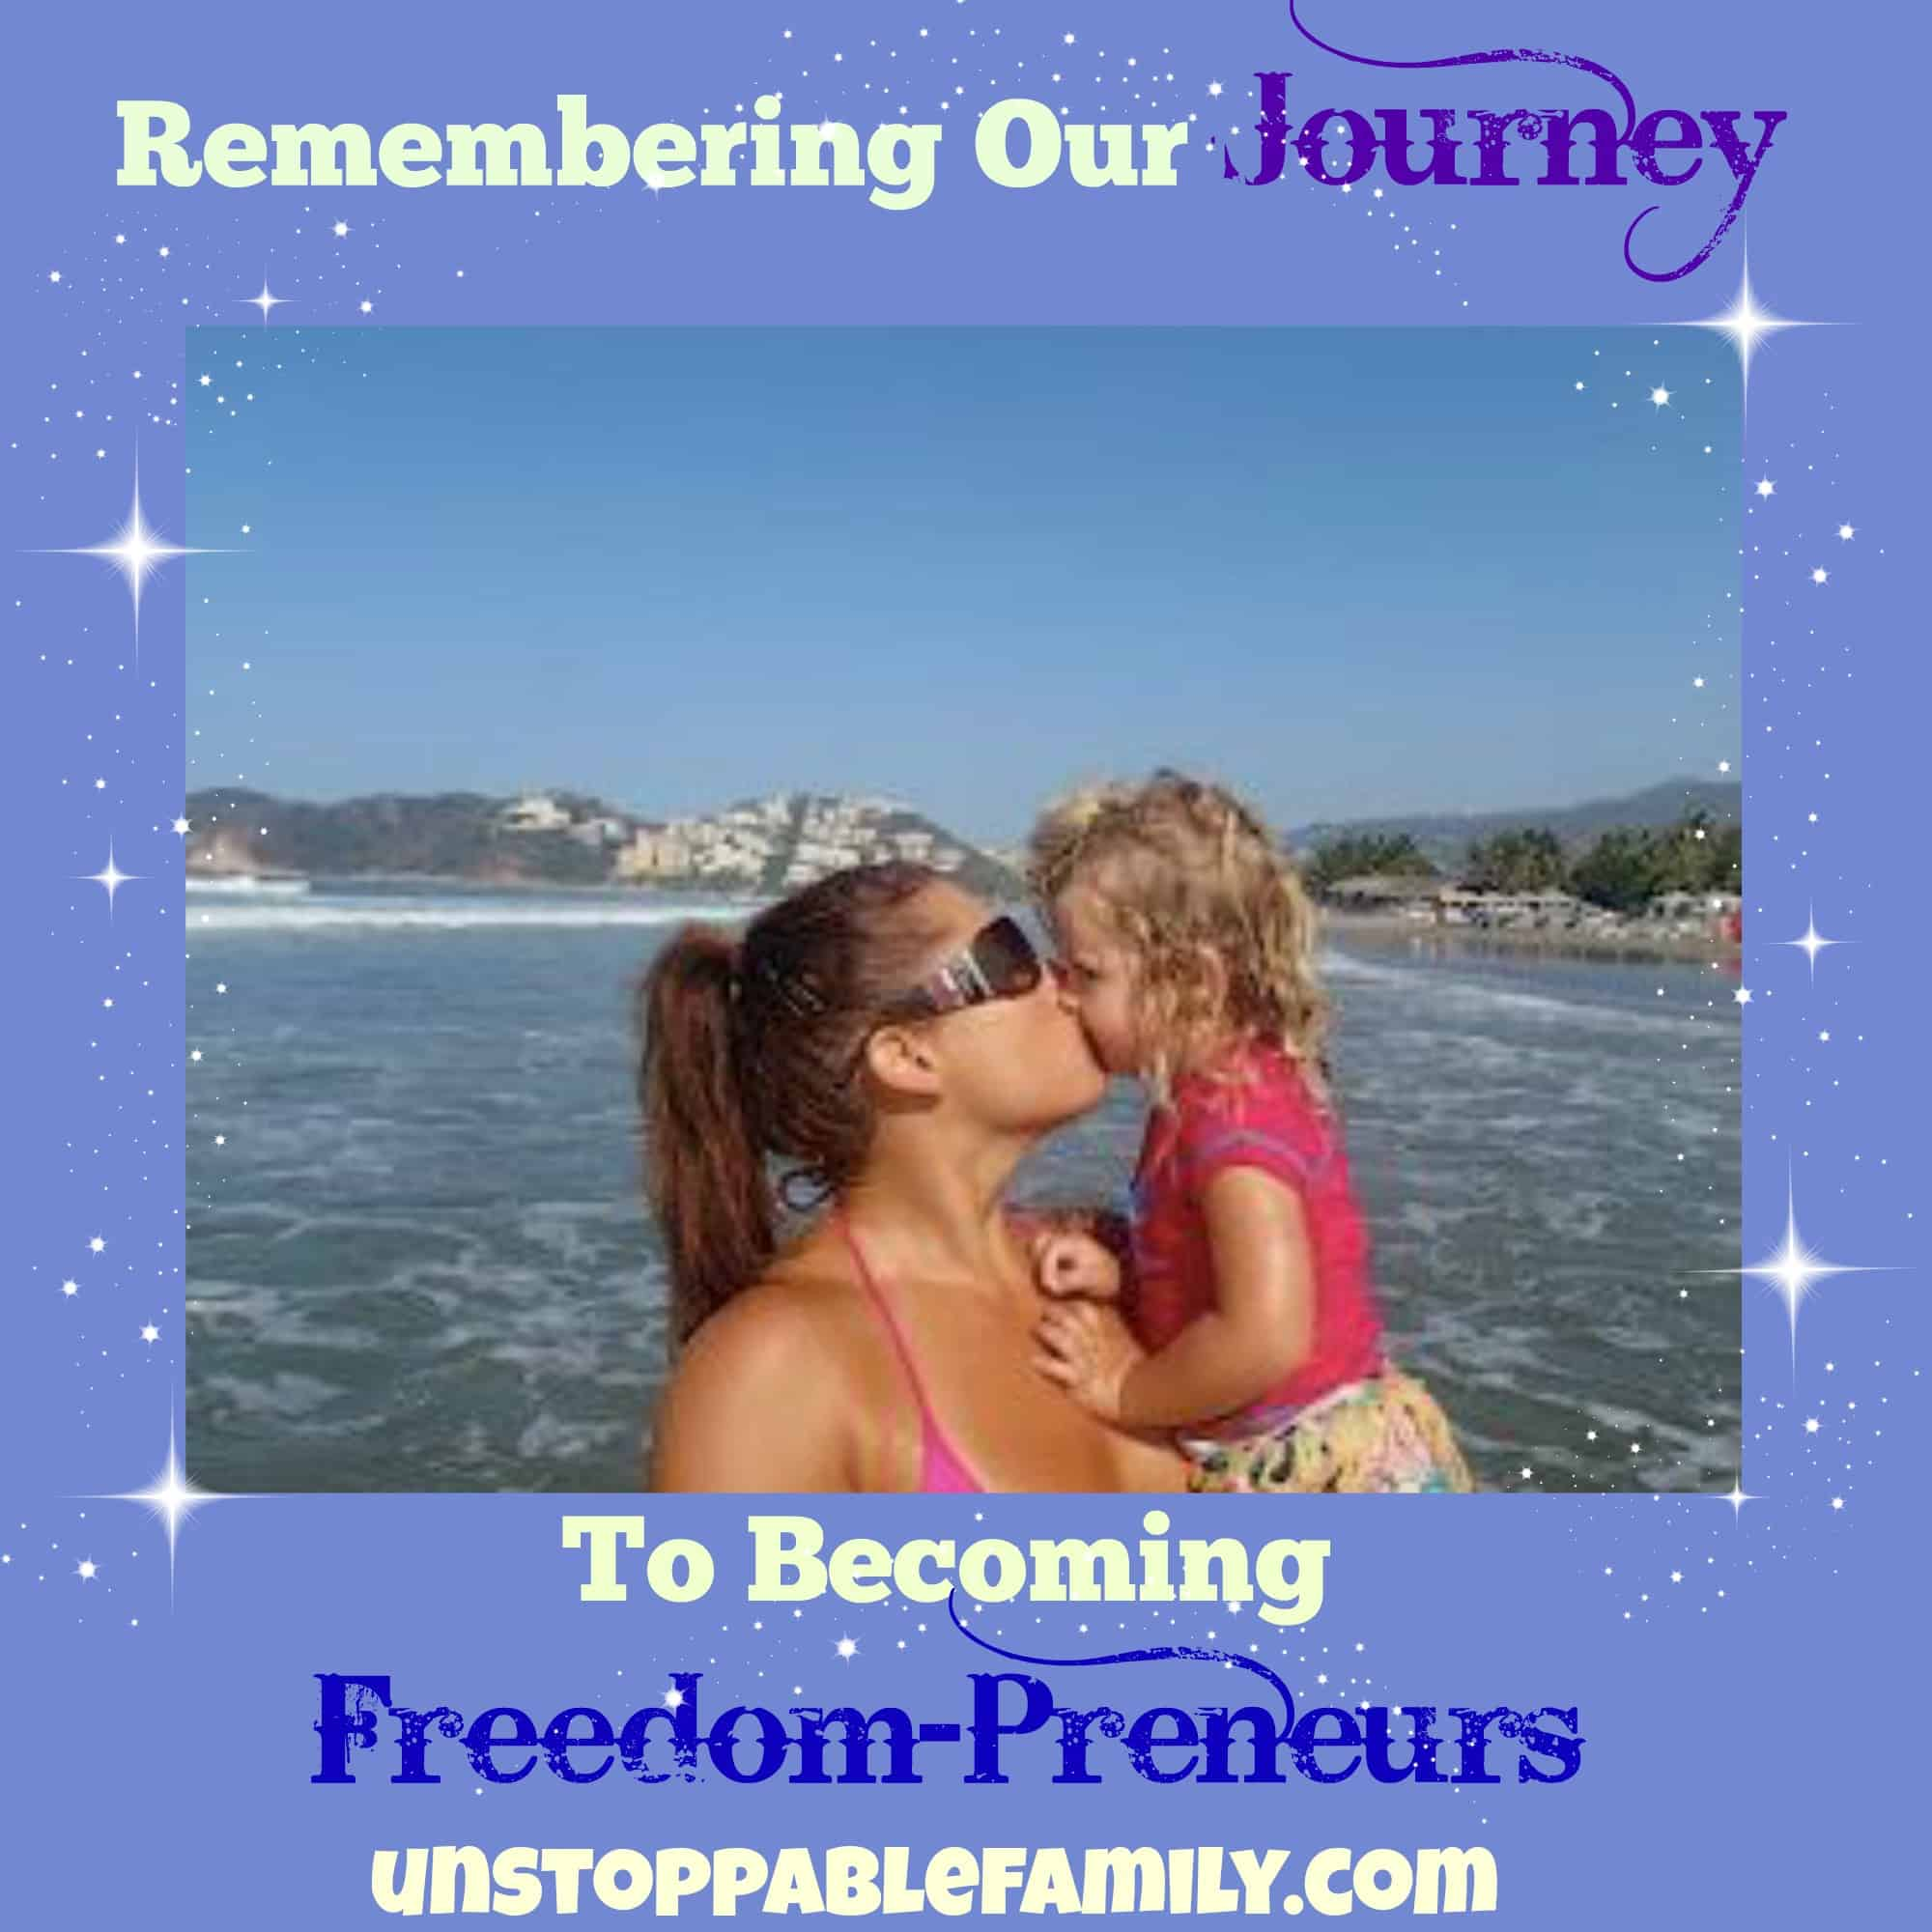 Remembering our journey to becoming freedom preneurs